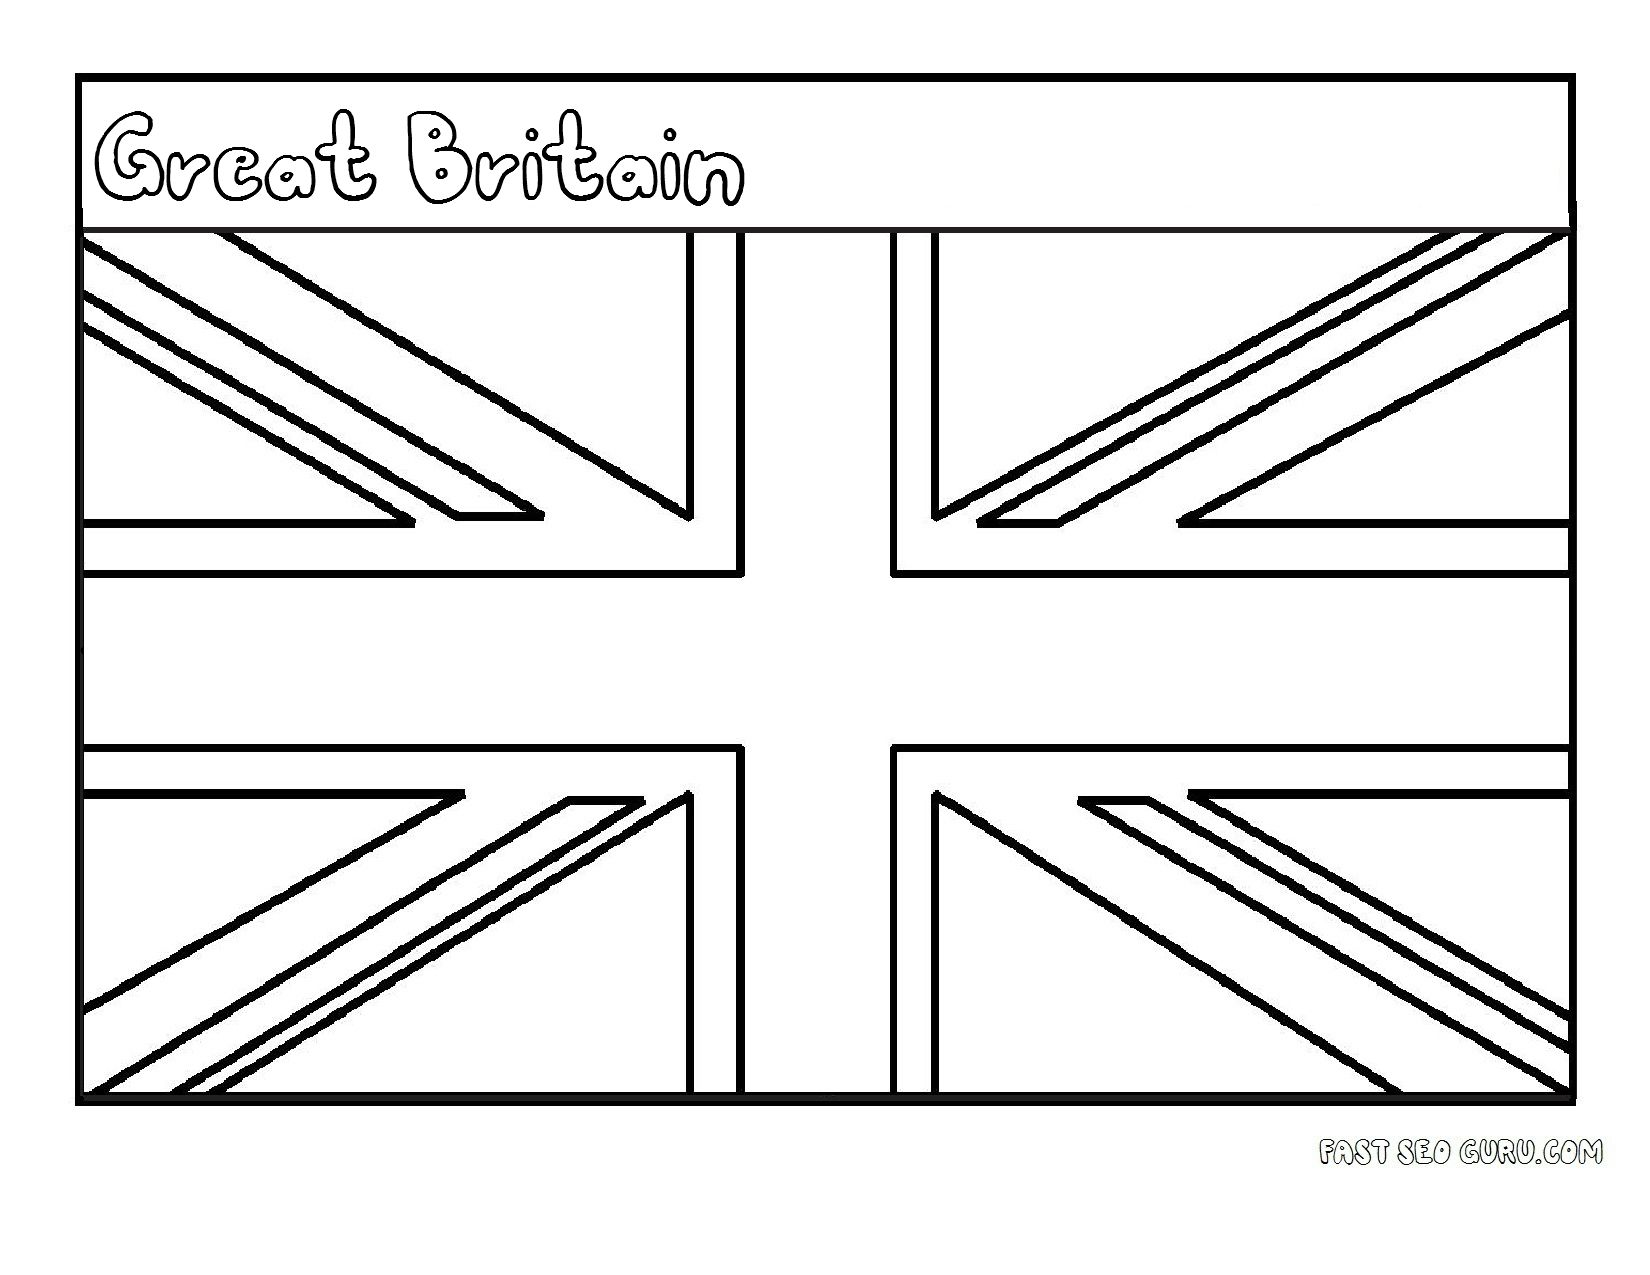 Printable Flag Of Great Britain Coloring Page Jpg 1 650 1 275 Pixels Flag Coloring Pages Britain Flag Great Britain Flag